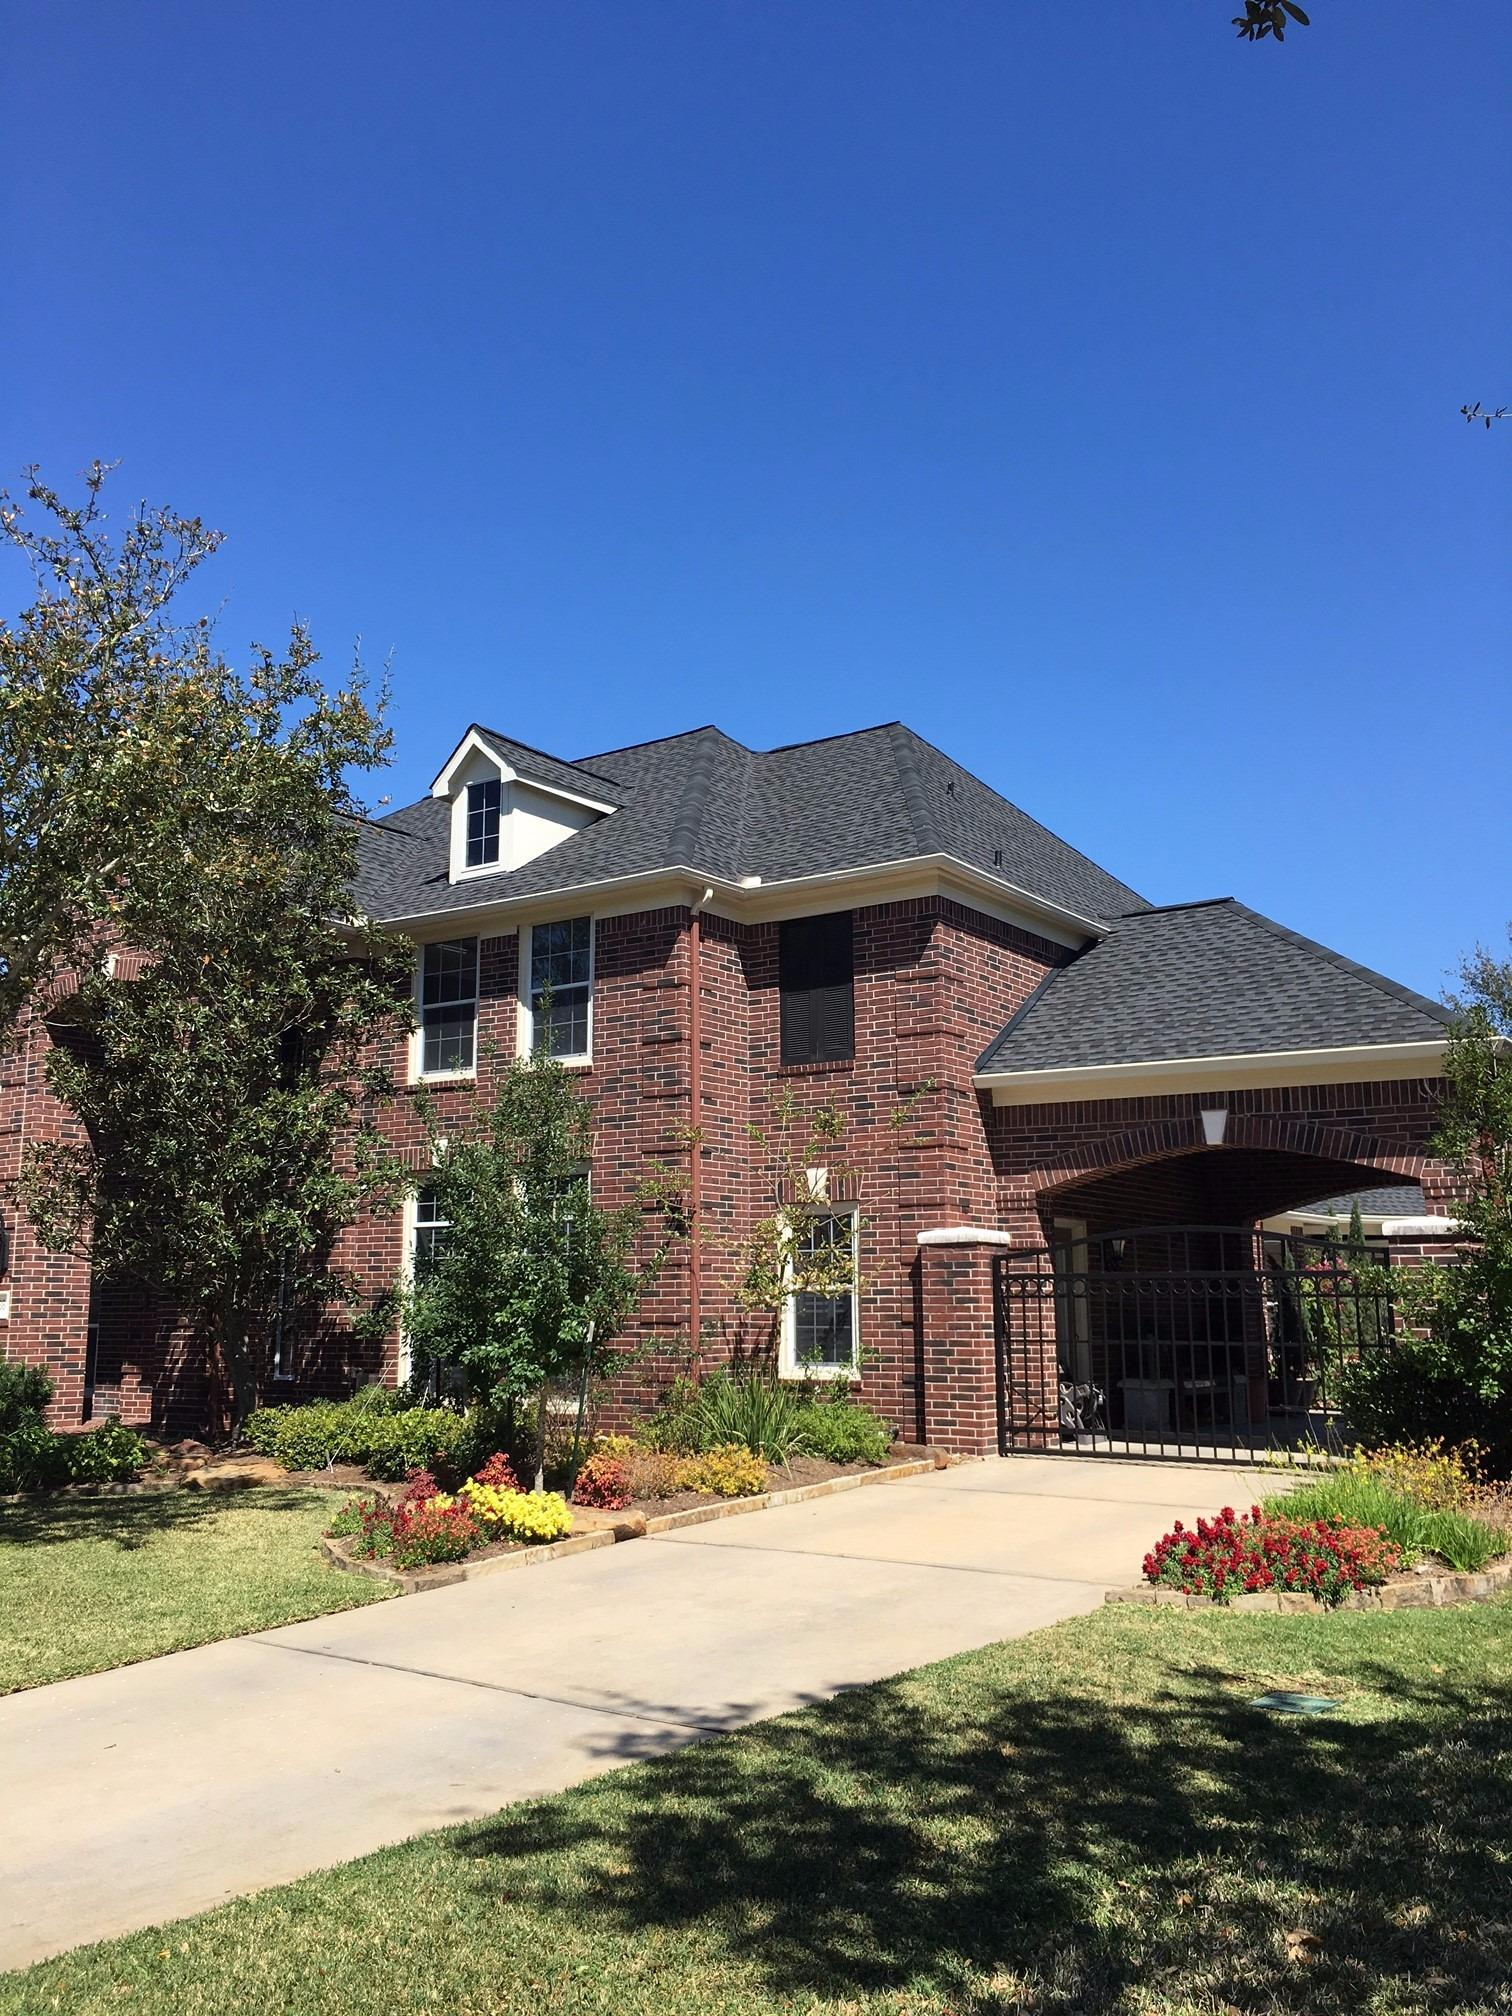 Houston Roofing & Construction image 9